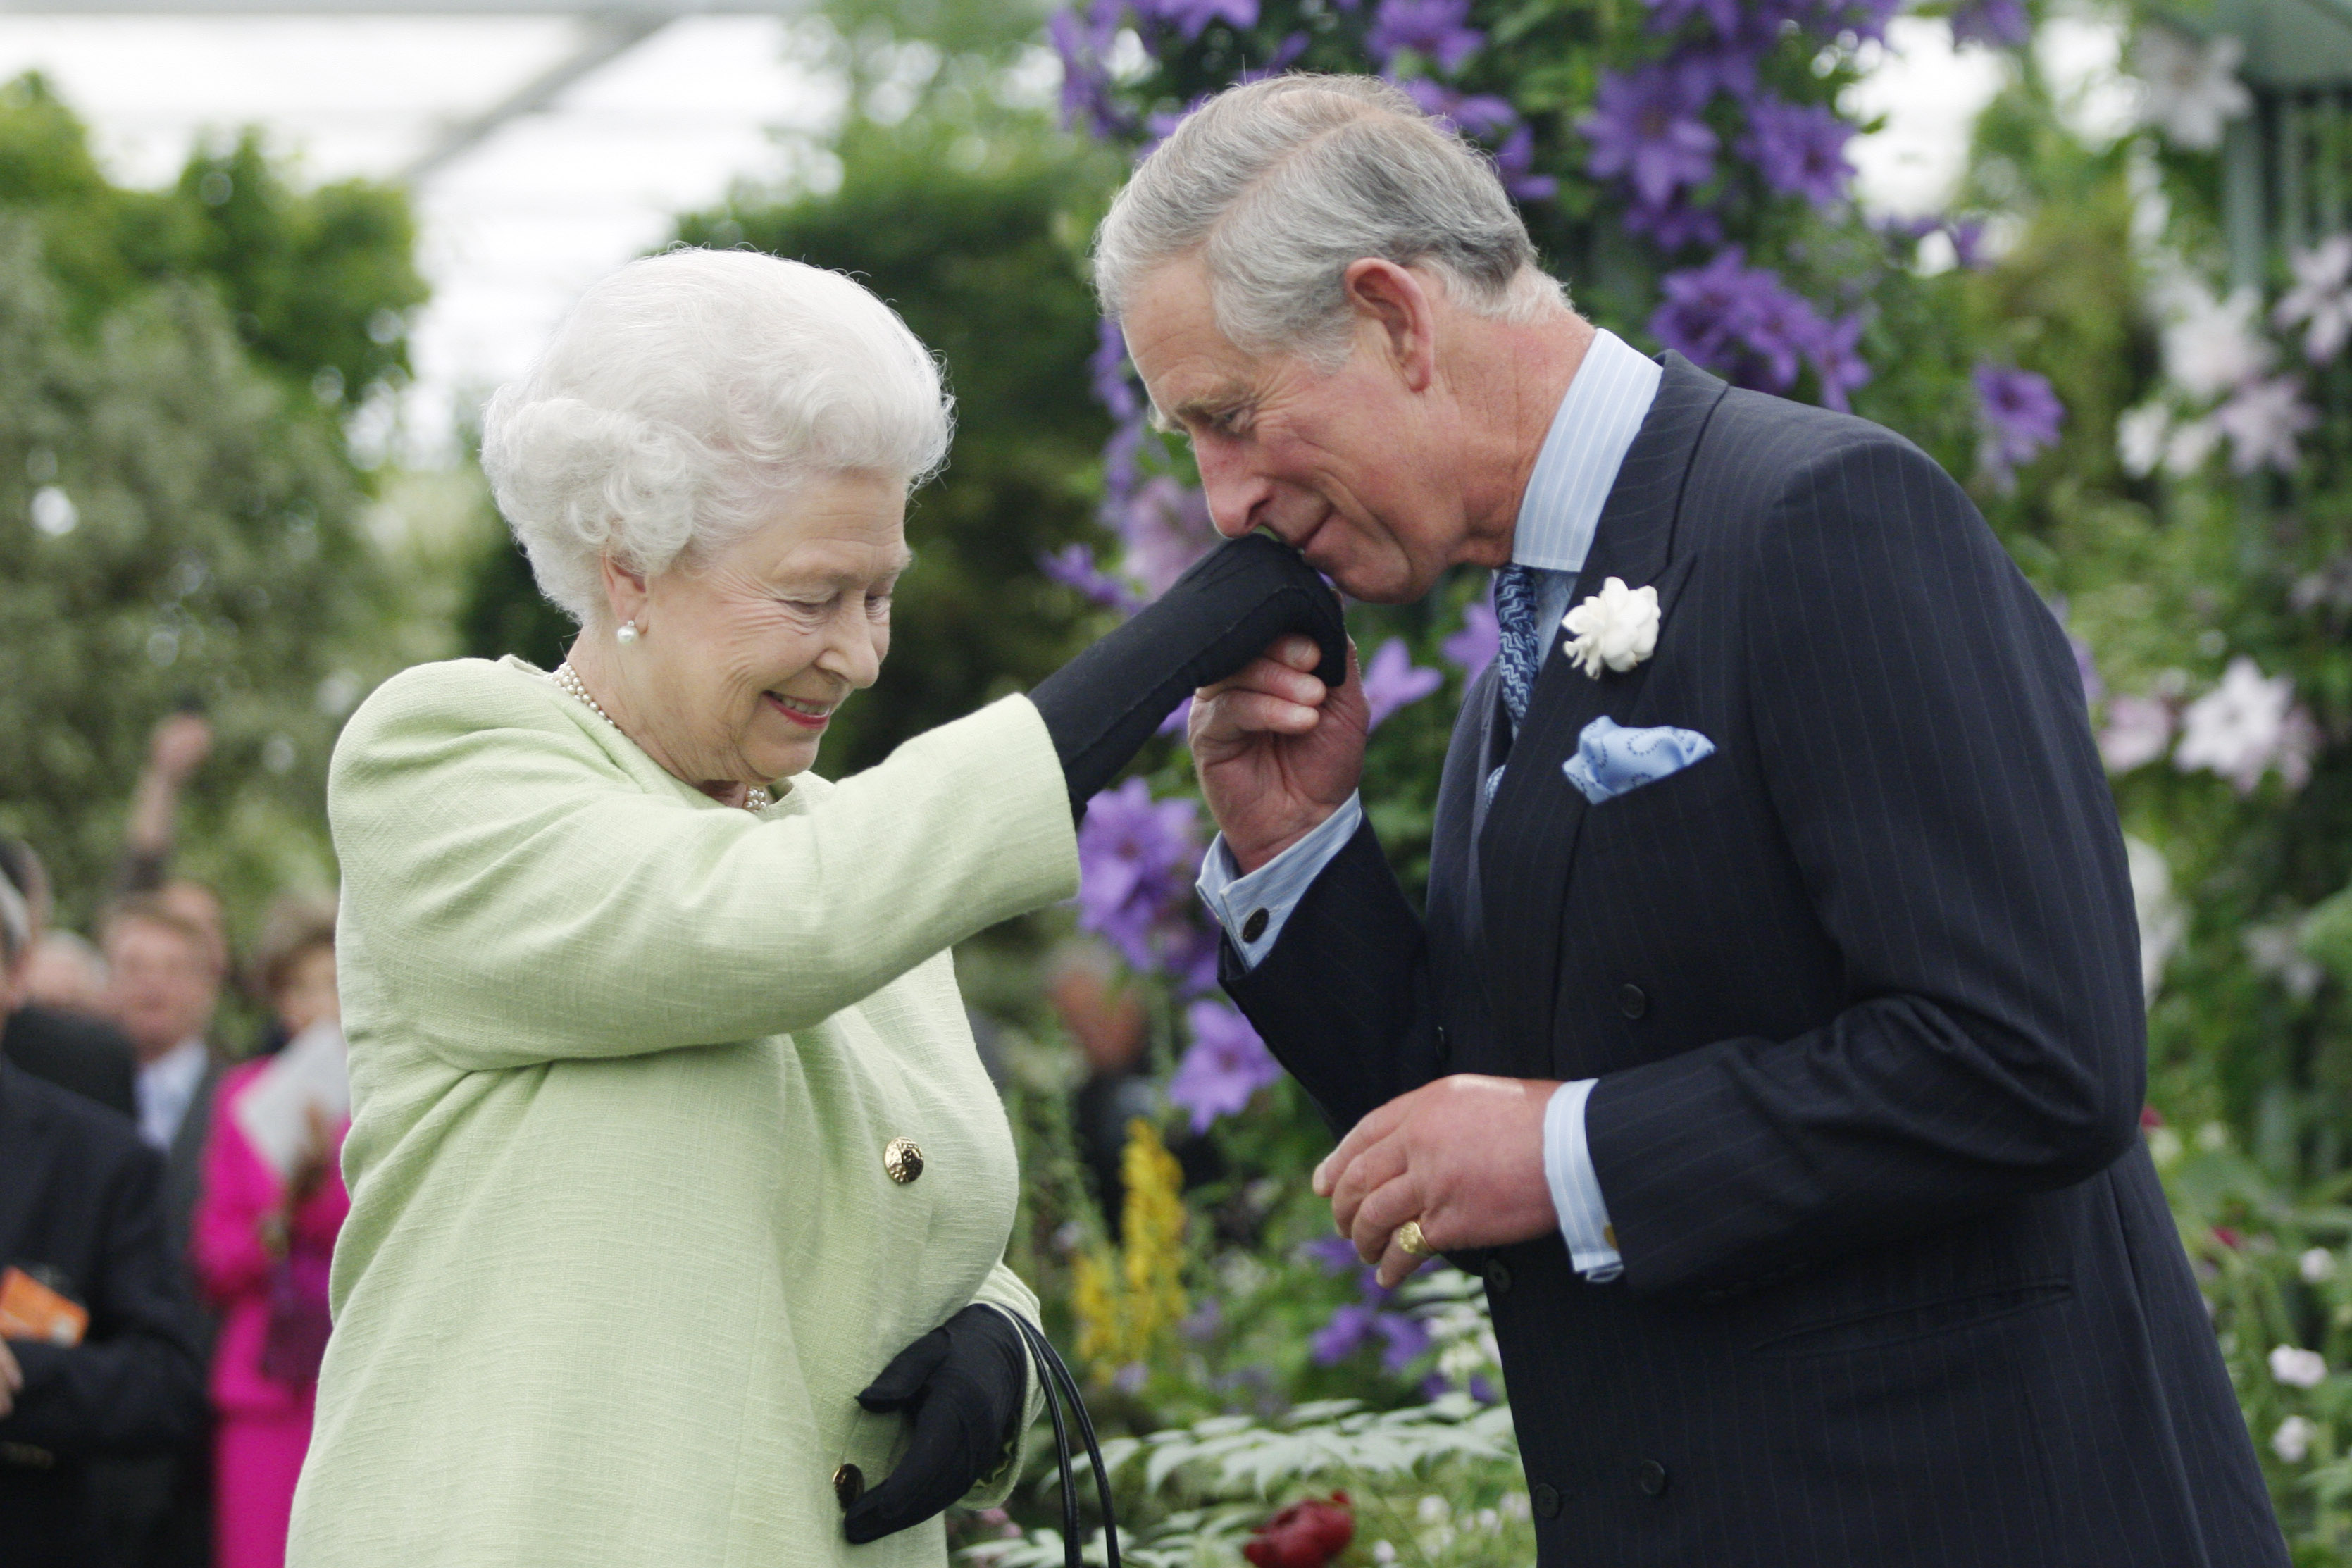 Queen Elizabeth II presents Prince Charles, Prince of Wales with the Royal Horticultural Society's Victoria Medal of Honour during a visit to the Chelsea Flower Show on May 18, 2009 in London. (Photo by Sang Tan/WPA Pool/Getty Images)